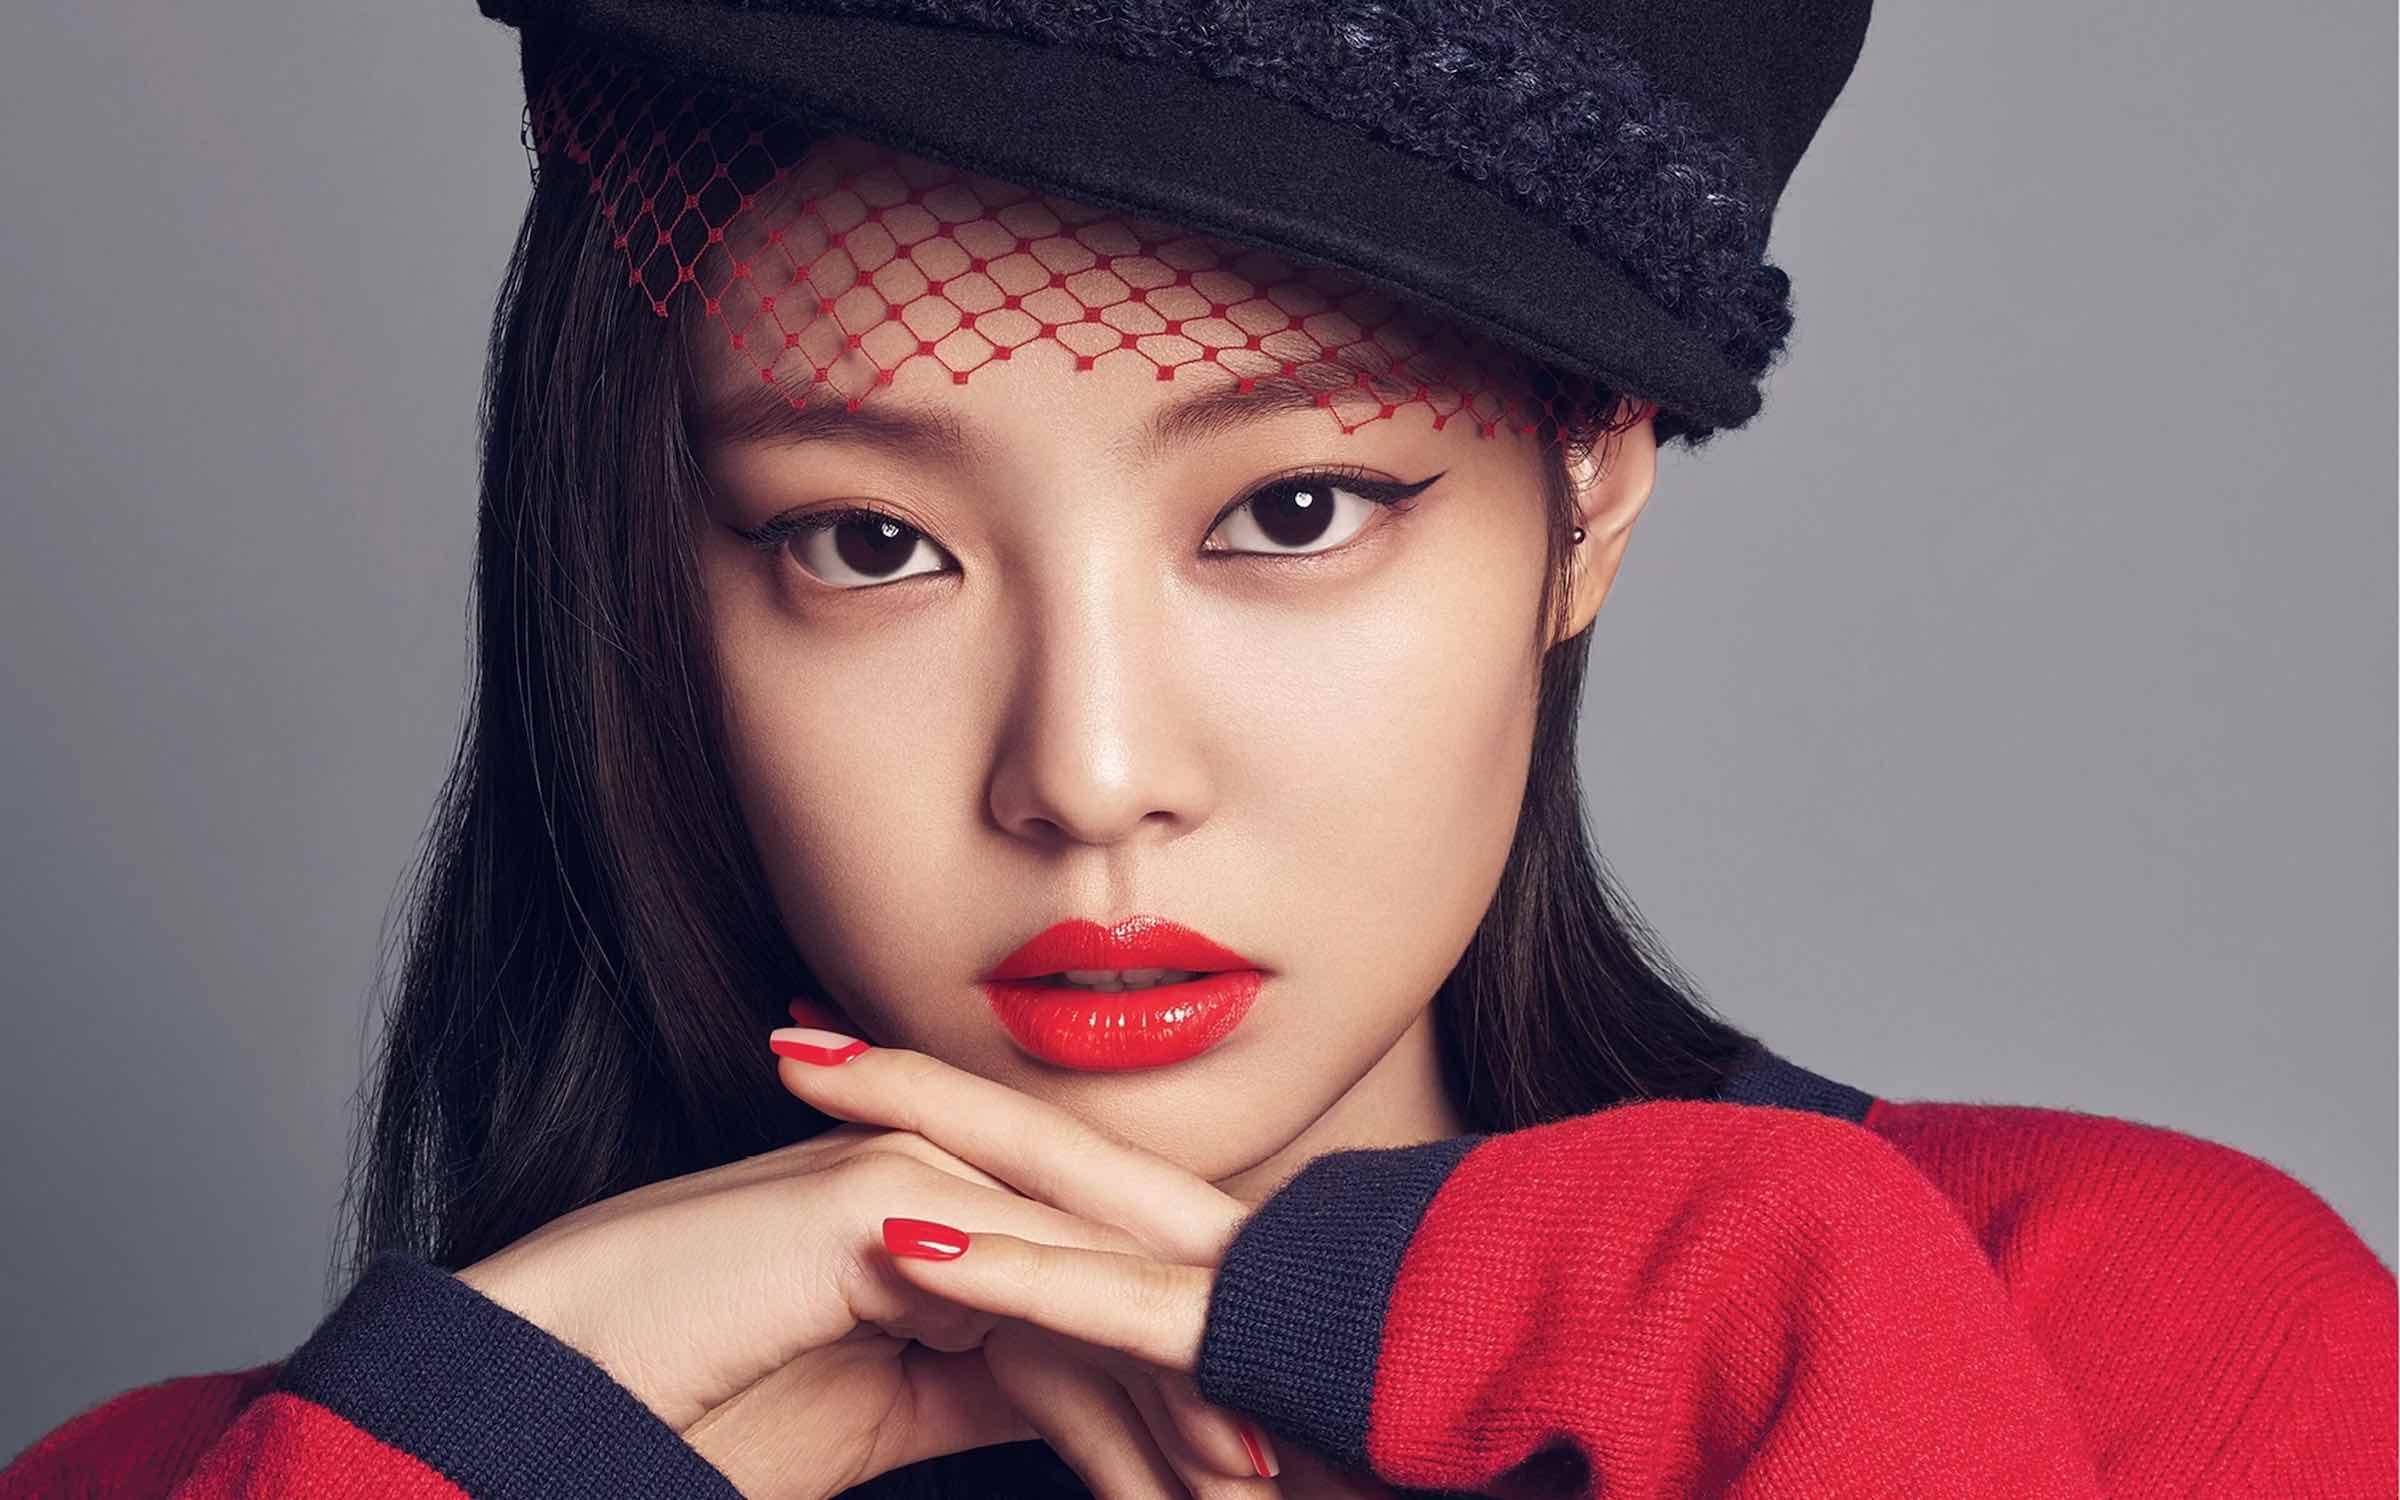 BLACKPINK's Jennie: 8 amazing facts about our K-pop obsession